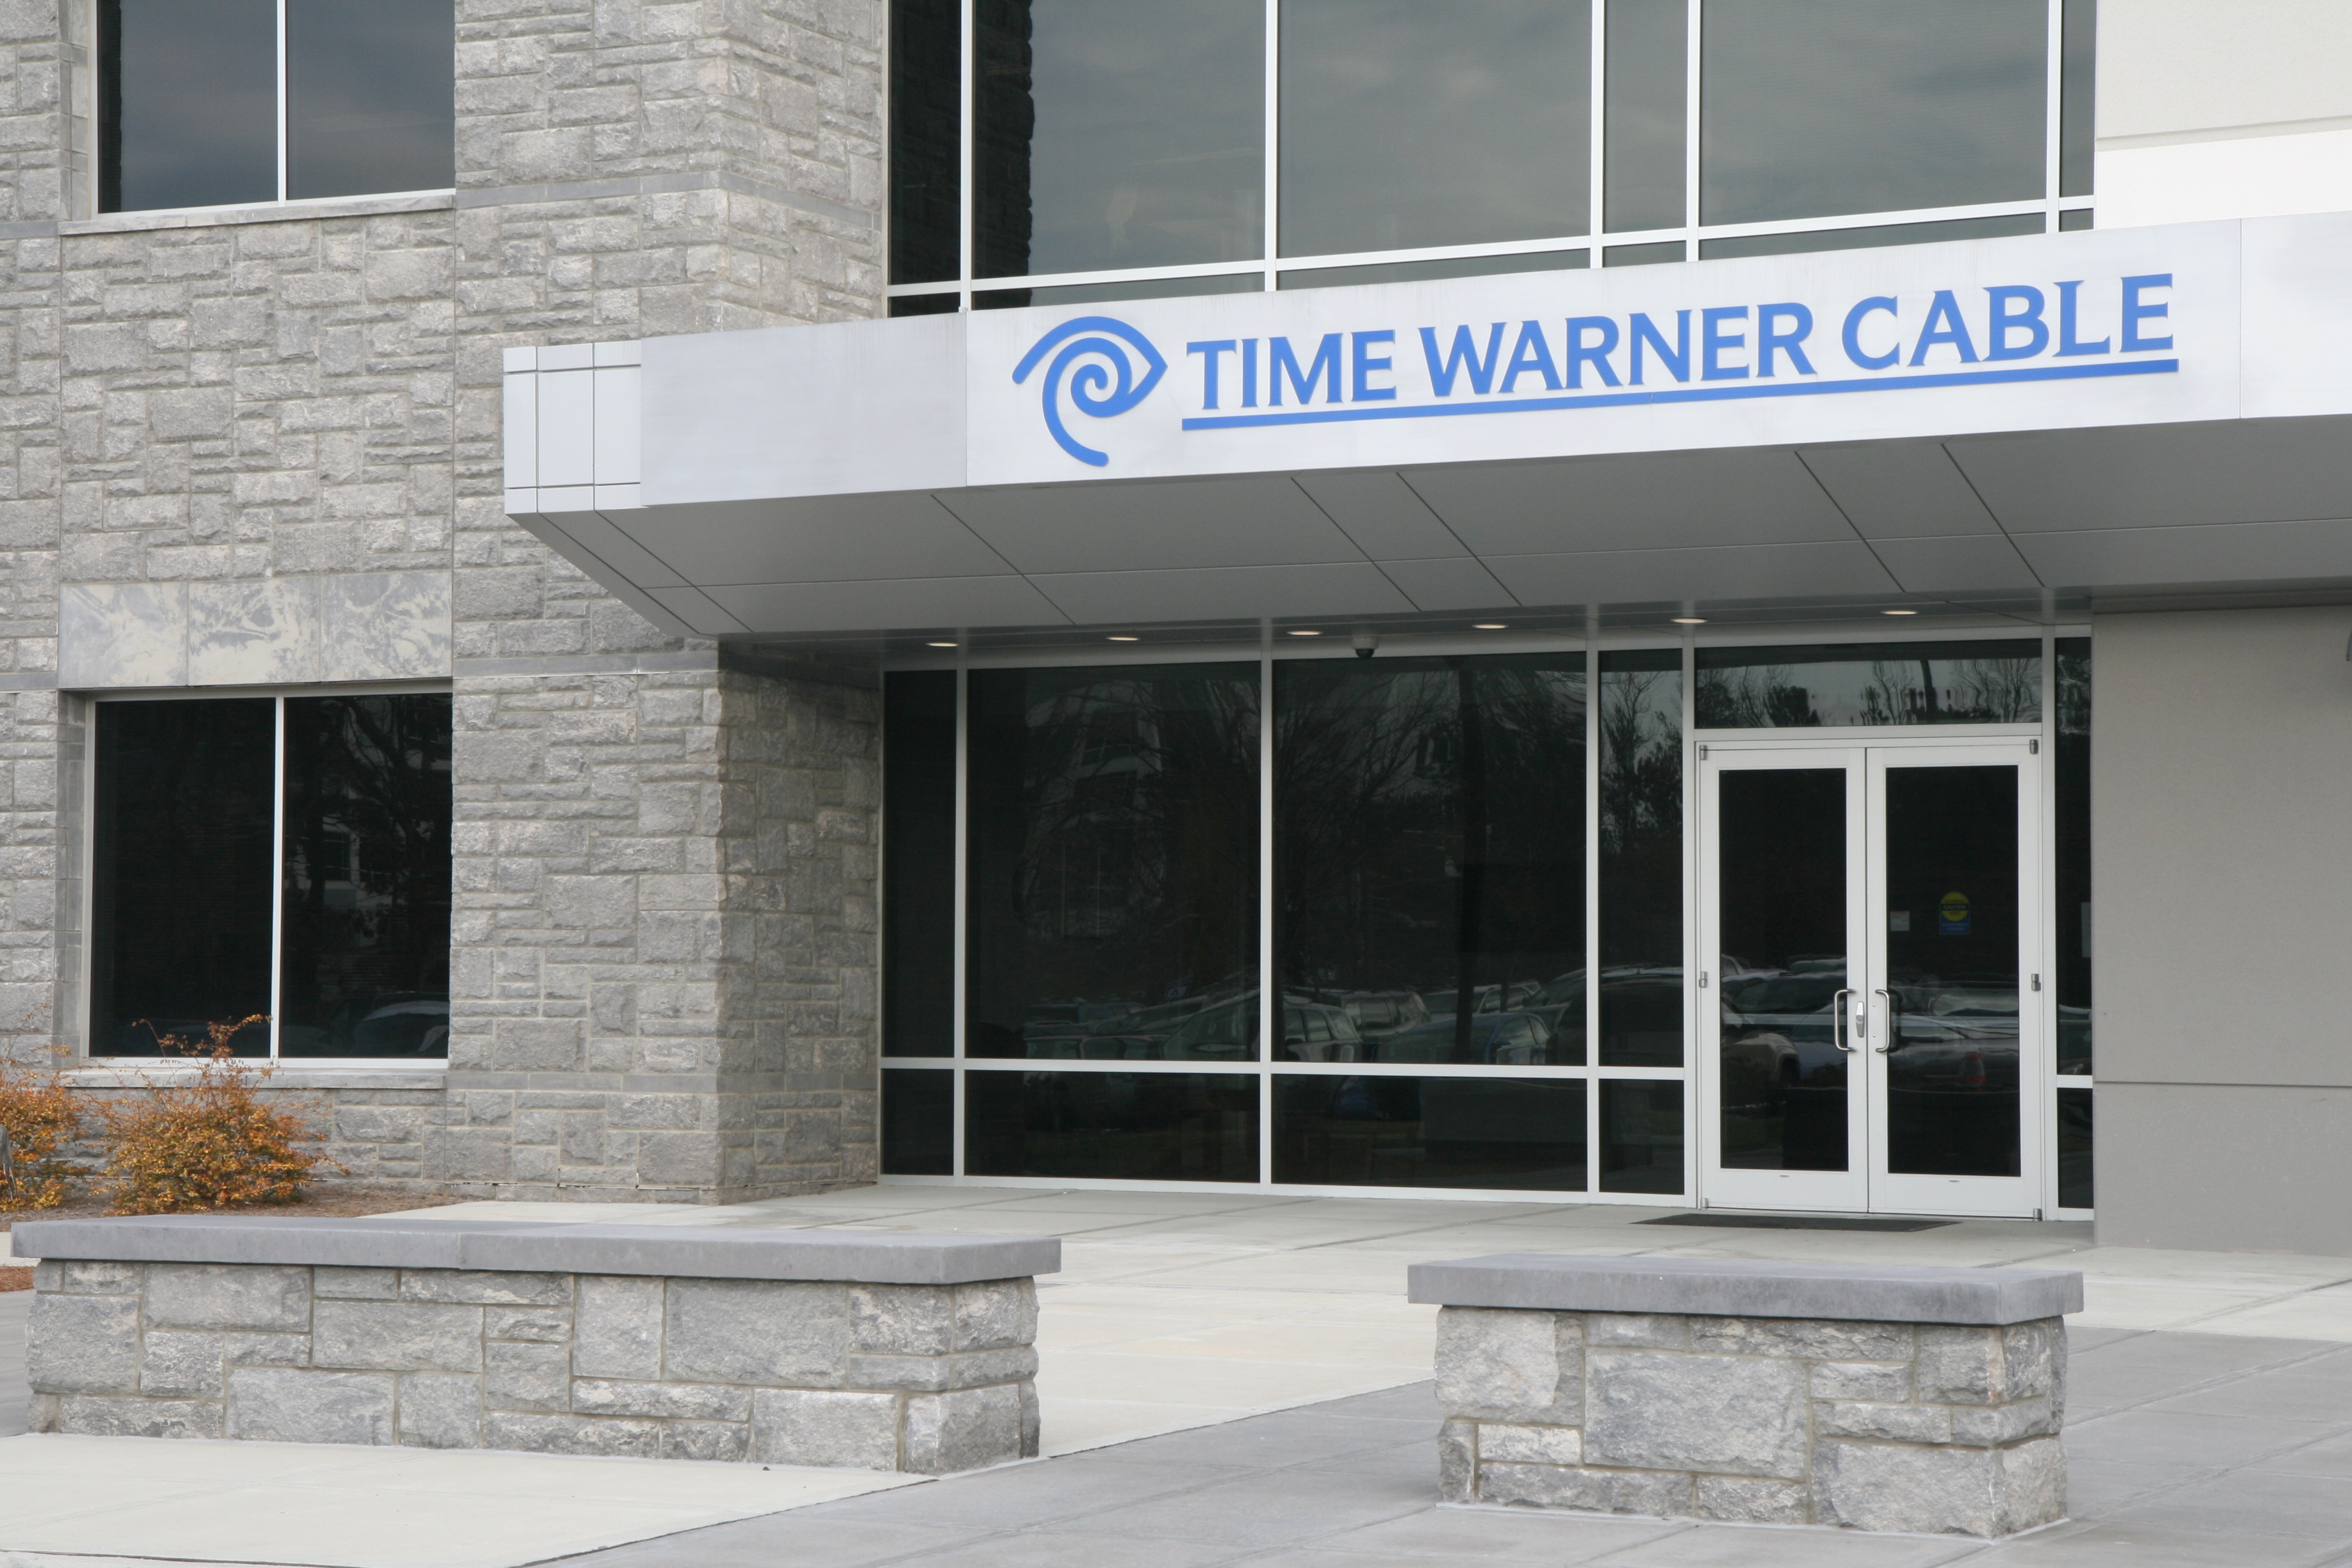 isis main office. Isis Main Office. Breaking: President Obama To Use Time Warner Customer Service Fight Office A